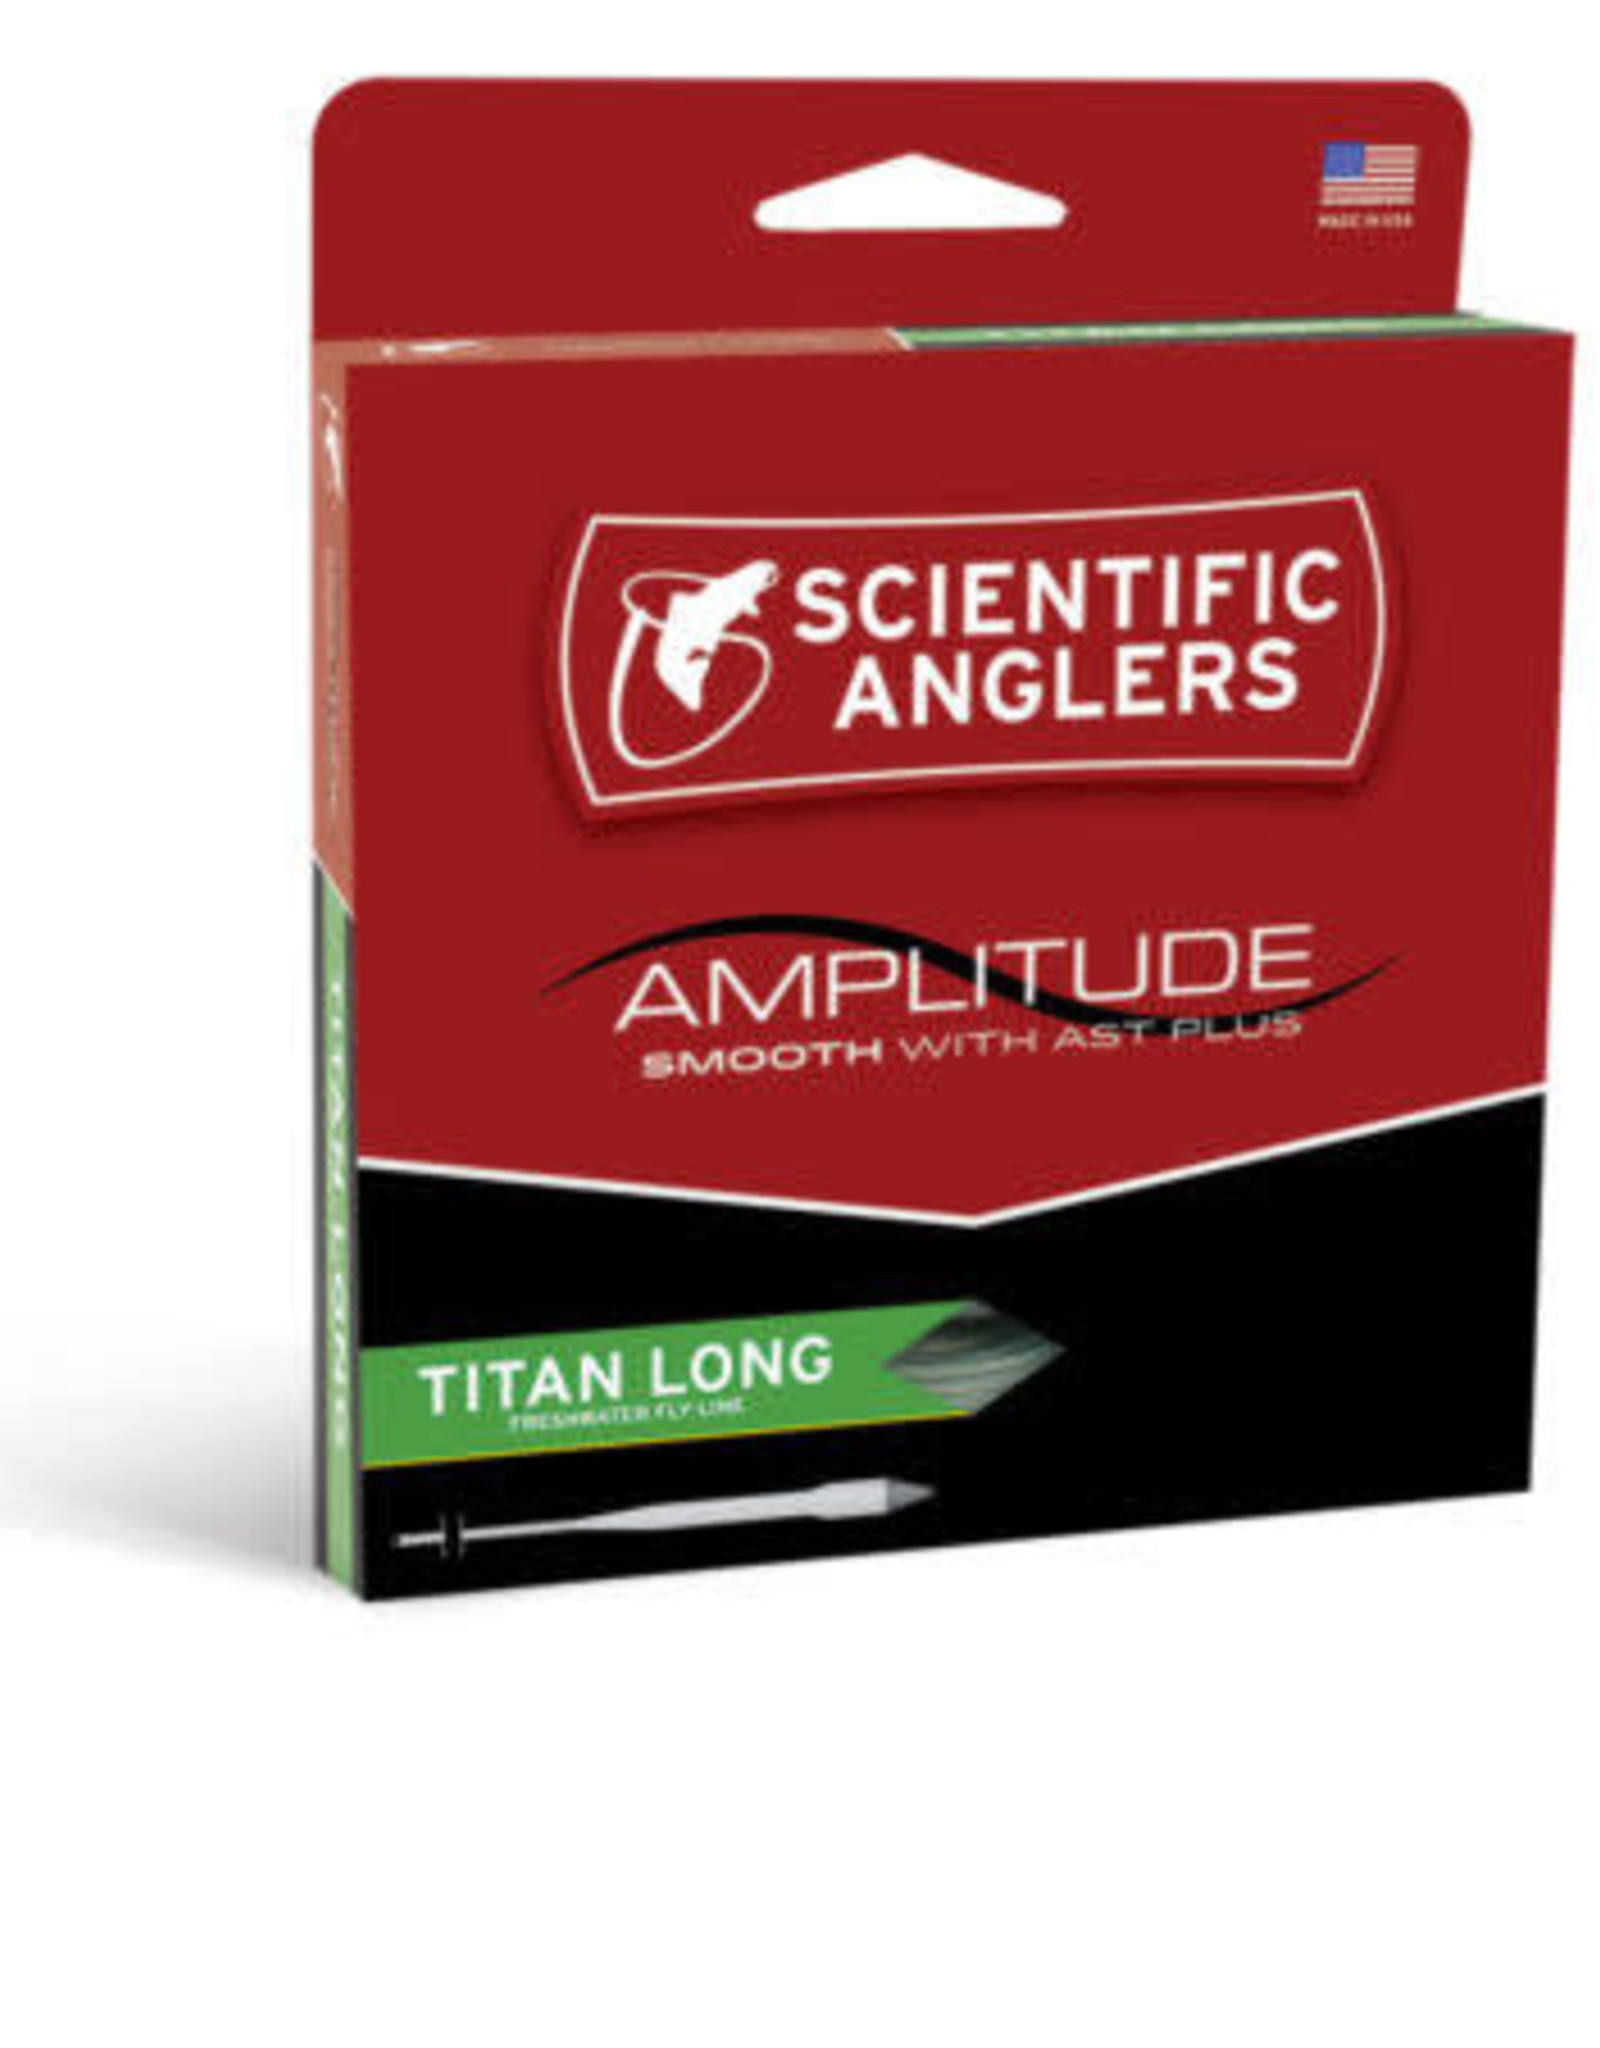 Scientific Anglers Scientific Anglers Amplitude Titan Long